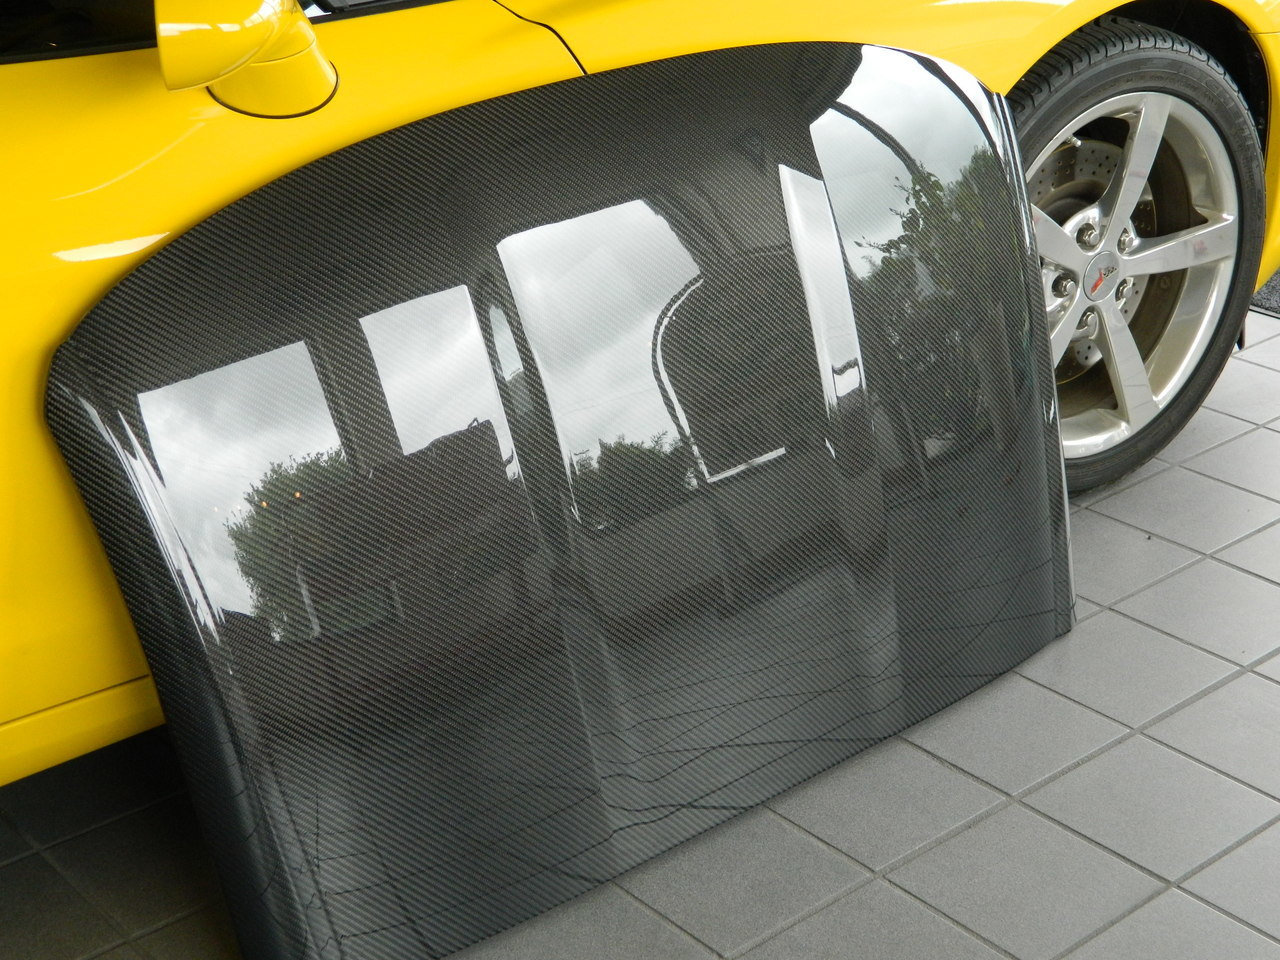 2014 Up C7 Corvette Carbon Fiber Corvette Roof Assembly Outright No Core Required C7 Performance